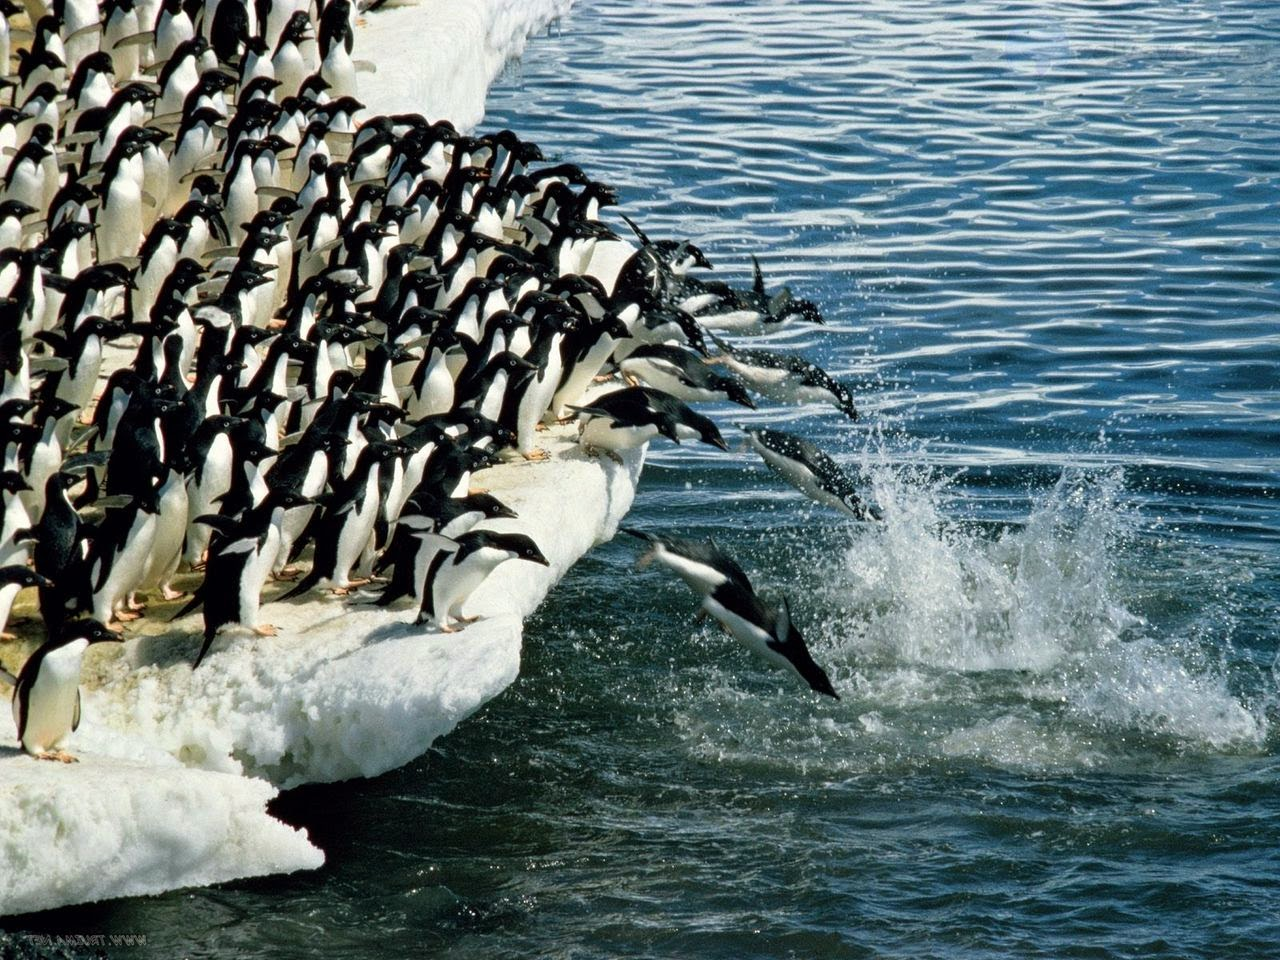 penguin.com essay contest This topic contains 0 replies, has 1 voice, and was last updated by schooladalempay 4 months ago viewing 1 post (of 1 total) author posts november 27, 2017 at 9:53 pm #1343 schooladalempayparticipant click here click here click here click here click here this amazing site, which includes experienced.